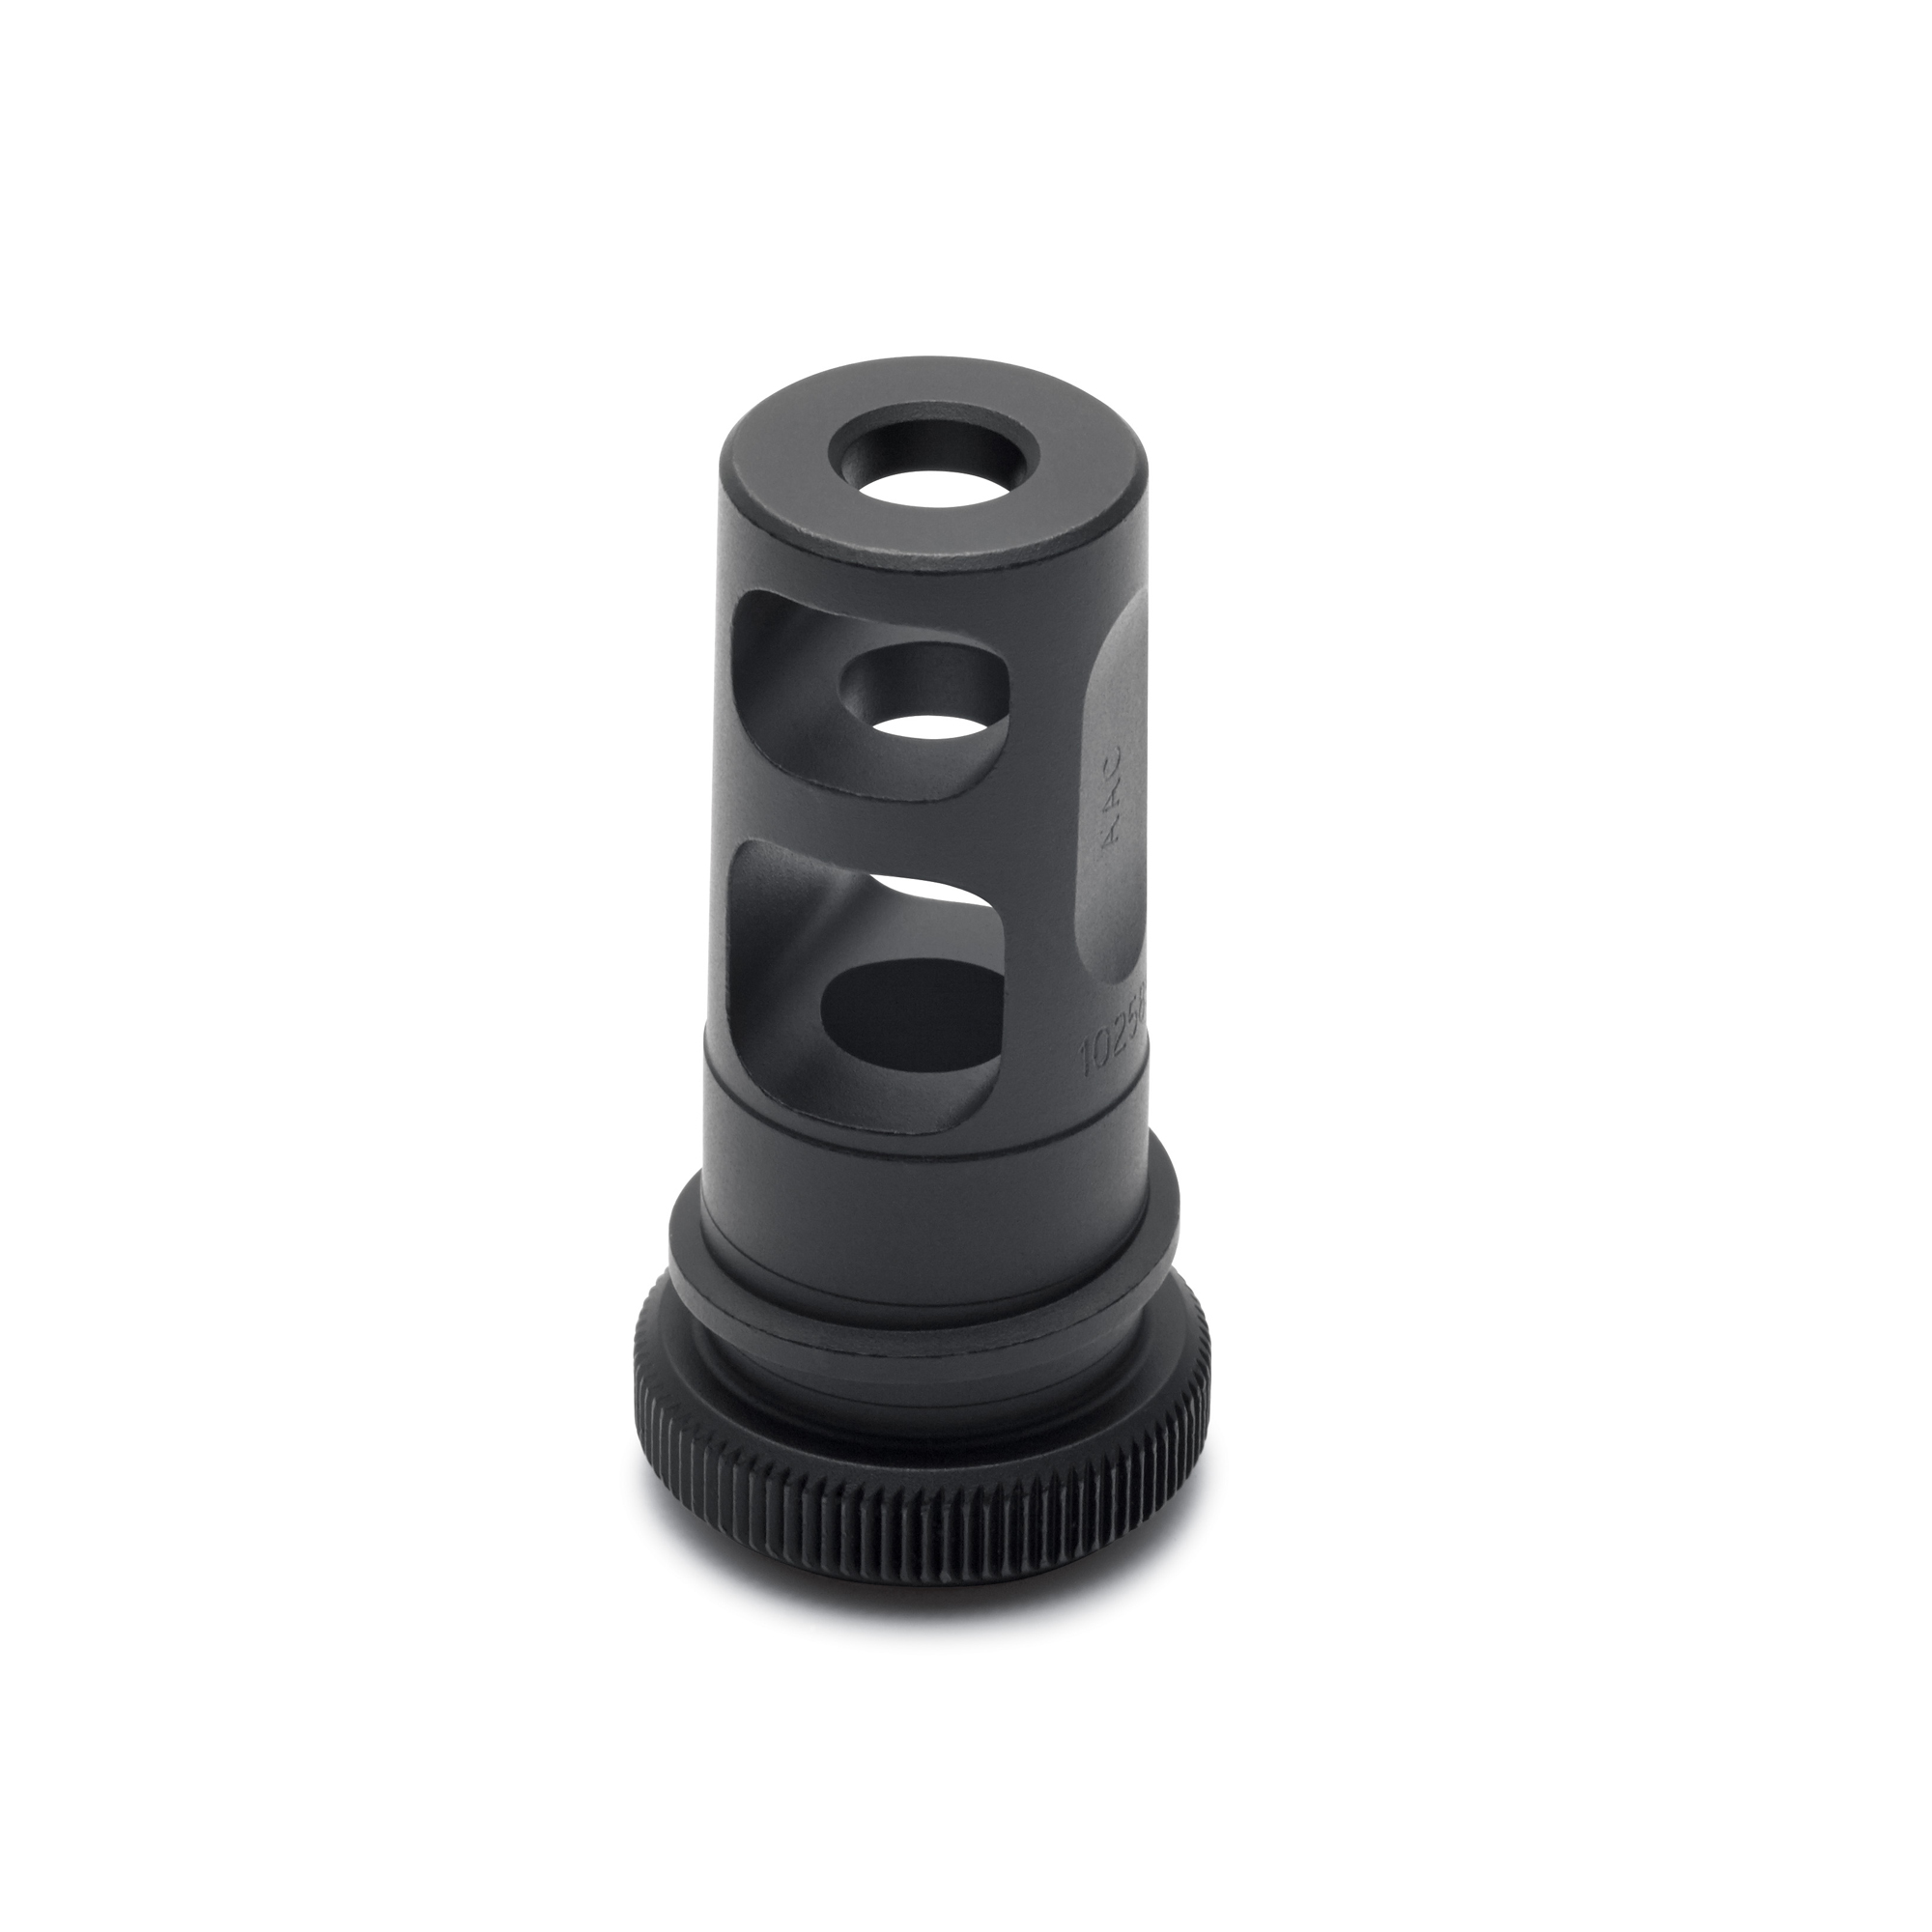 Highly-efficient muzzle brake design and compatible with AAC sound suppressors. Constructed with aerospace-grade heat-treated 17-4 stainless steel and Nitride coated for high surface hardness and durability.